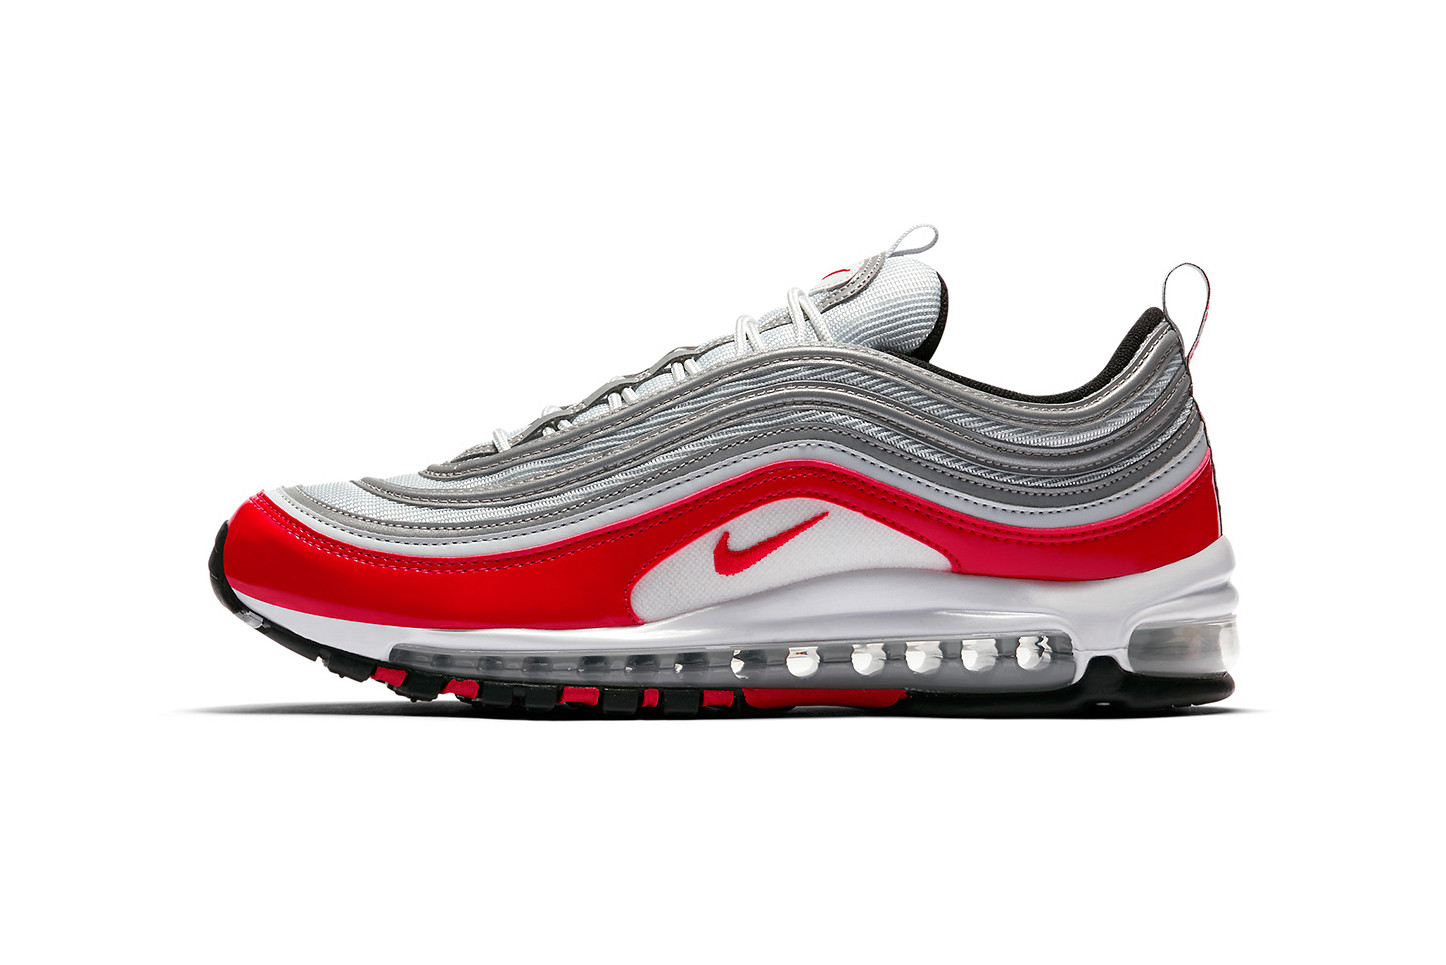 Nike Air Max 97 in OG AM1 Colorway